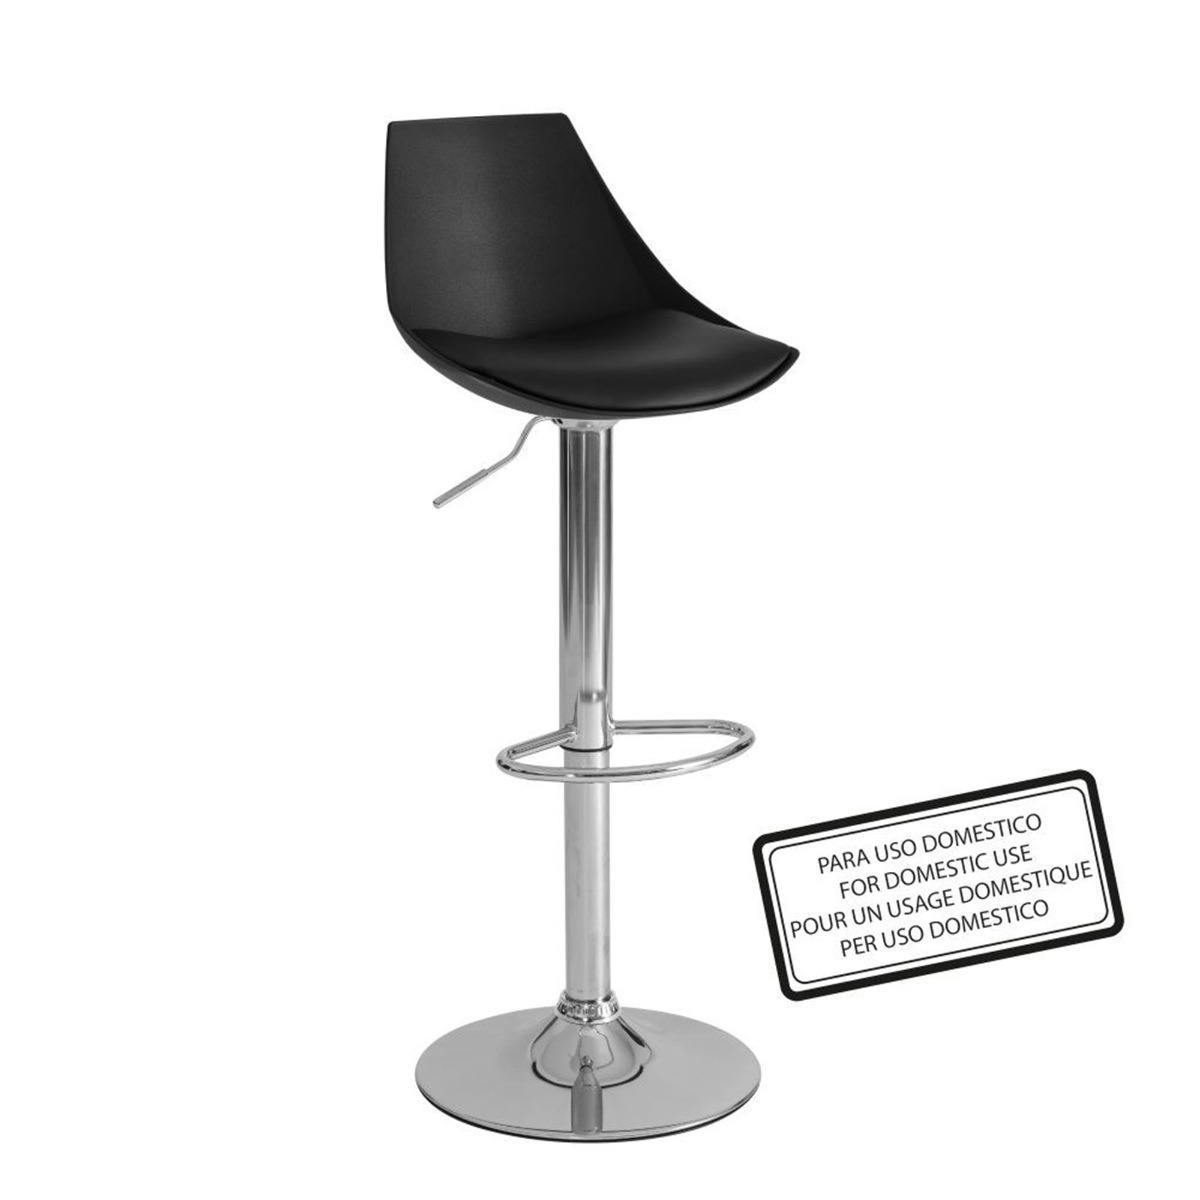 Silla alta para bar o banco de cocina color negro for Sillas barra cocina